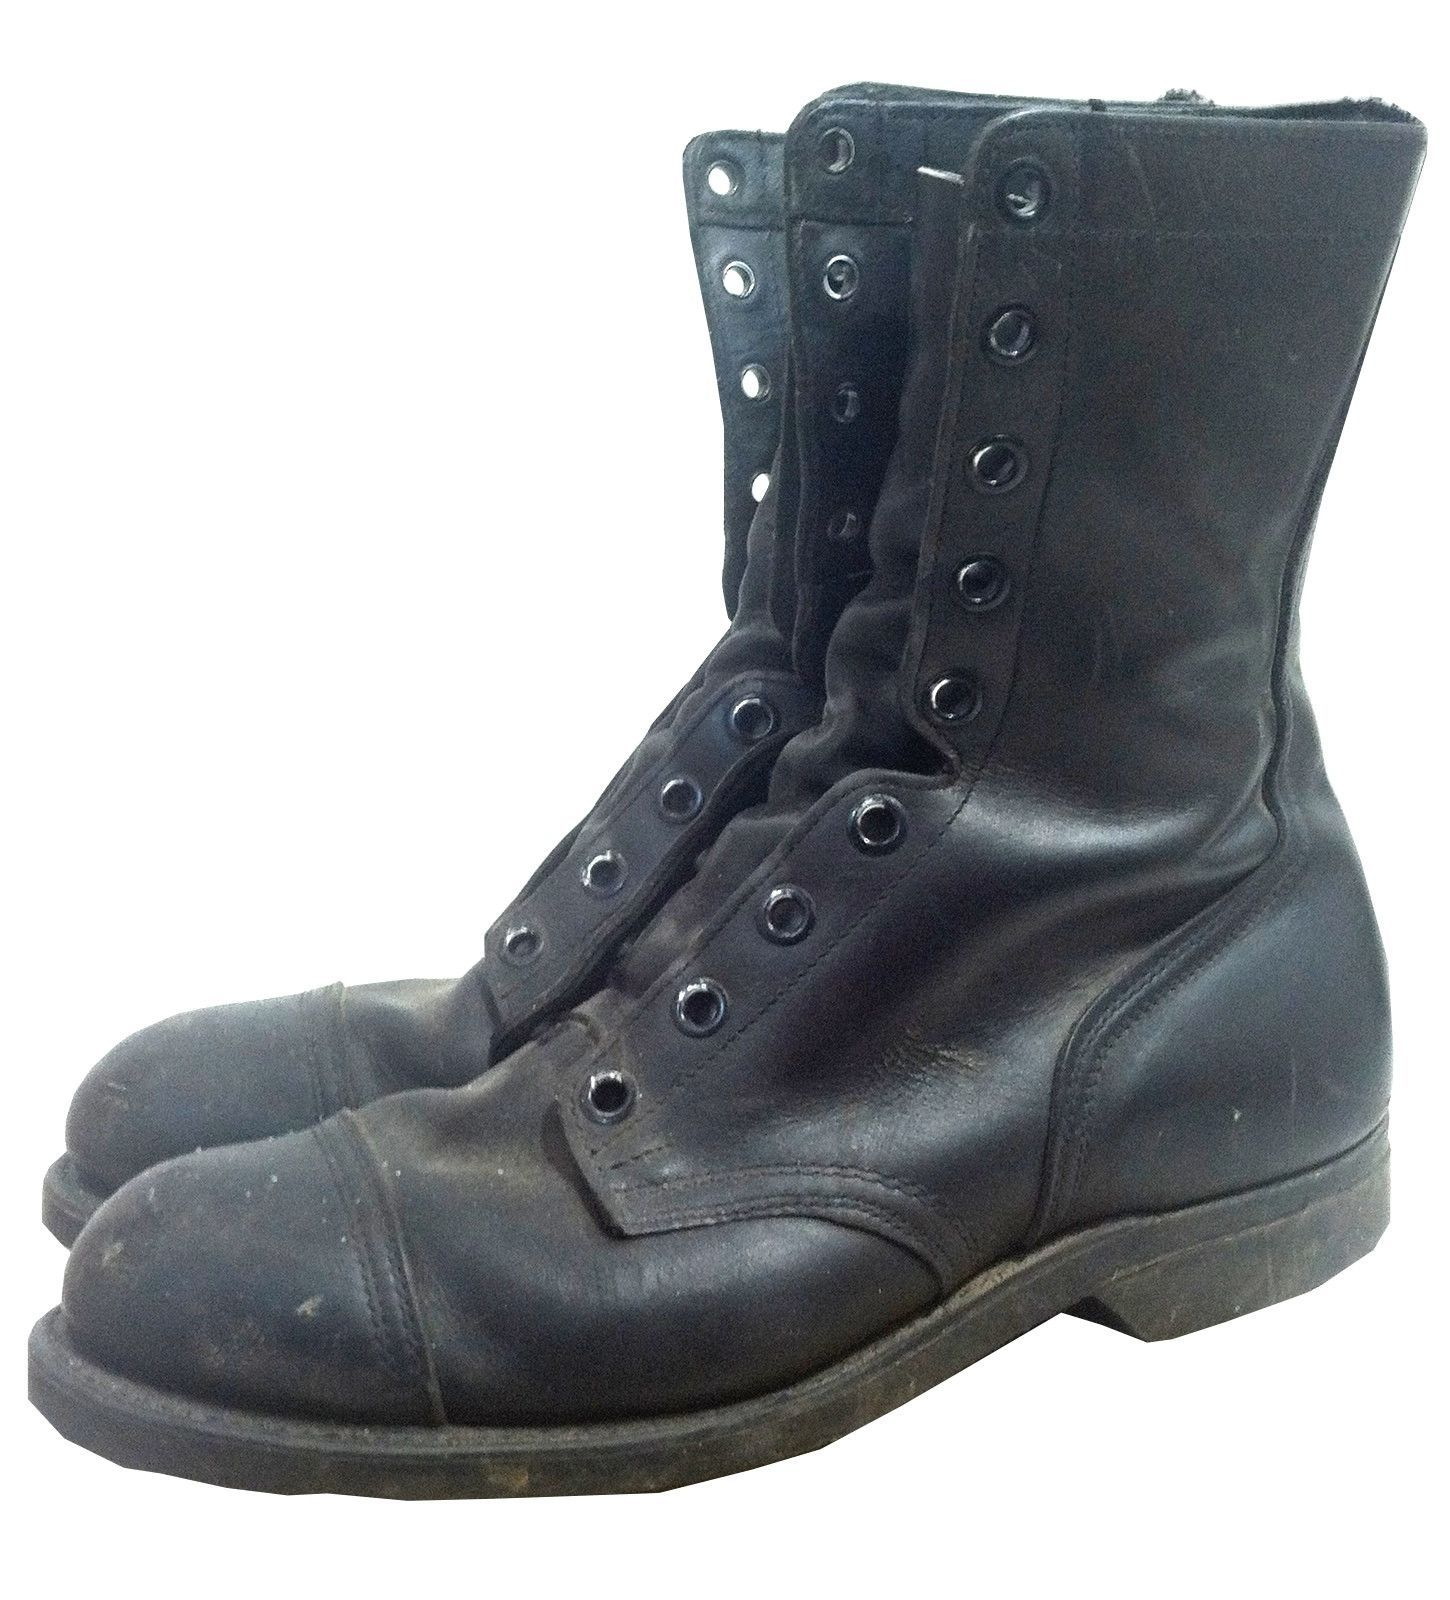 1960s black leather mens combat boots with steel toes, 18 holes ...